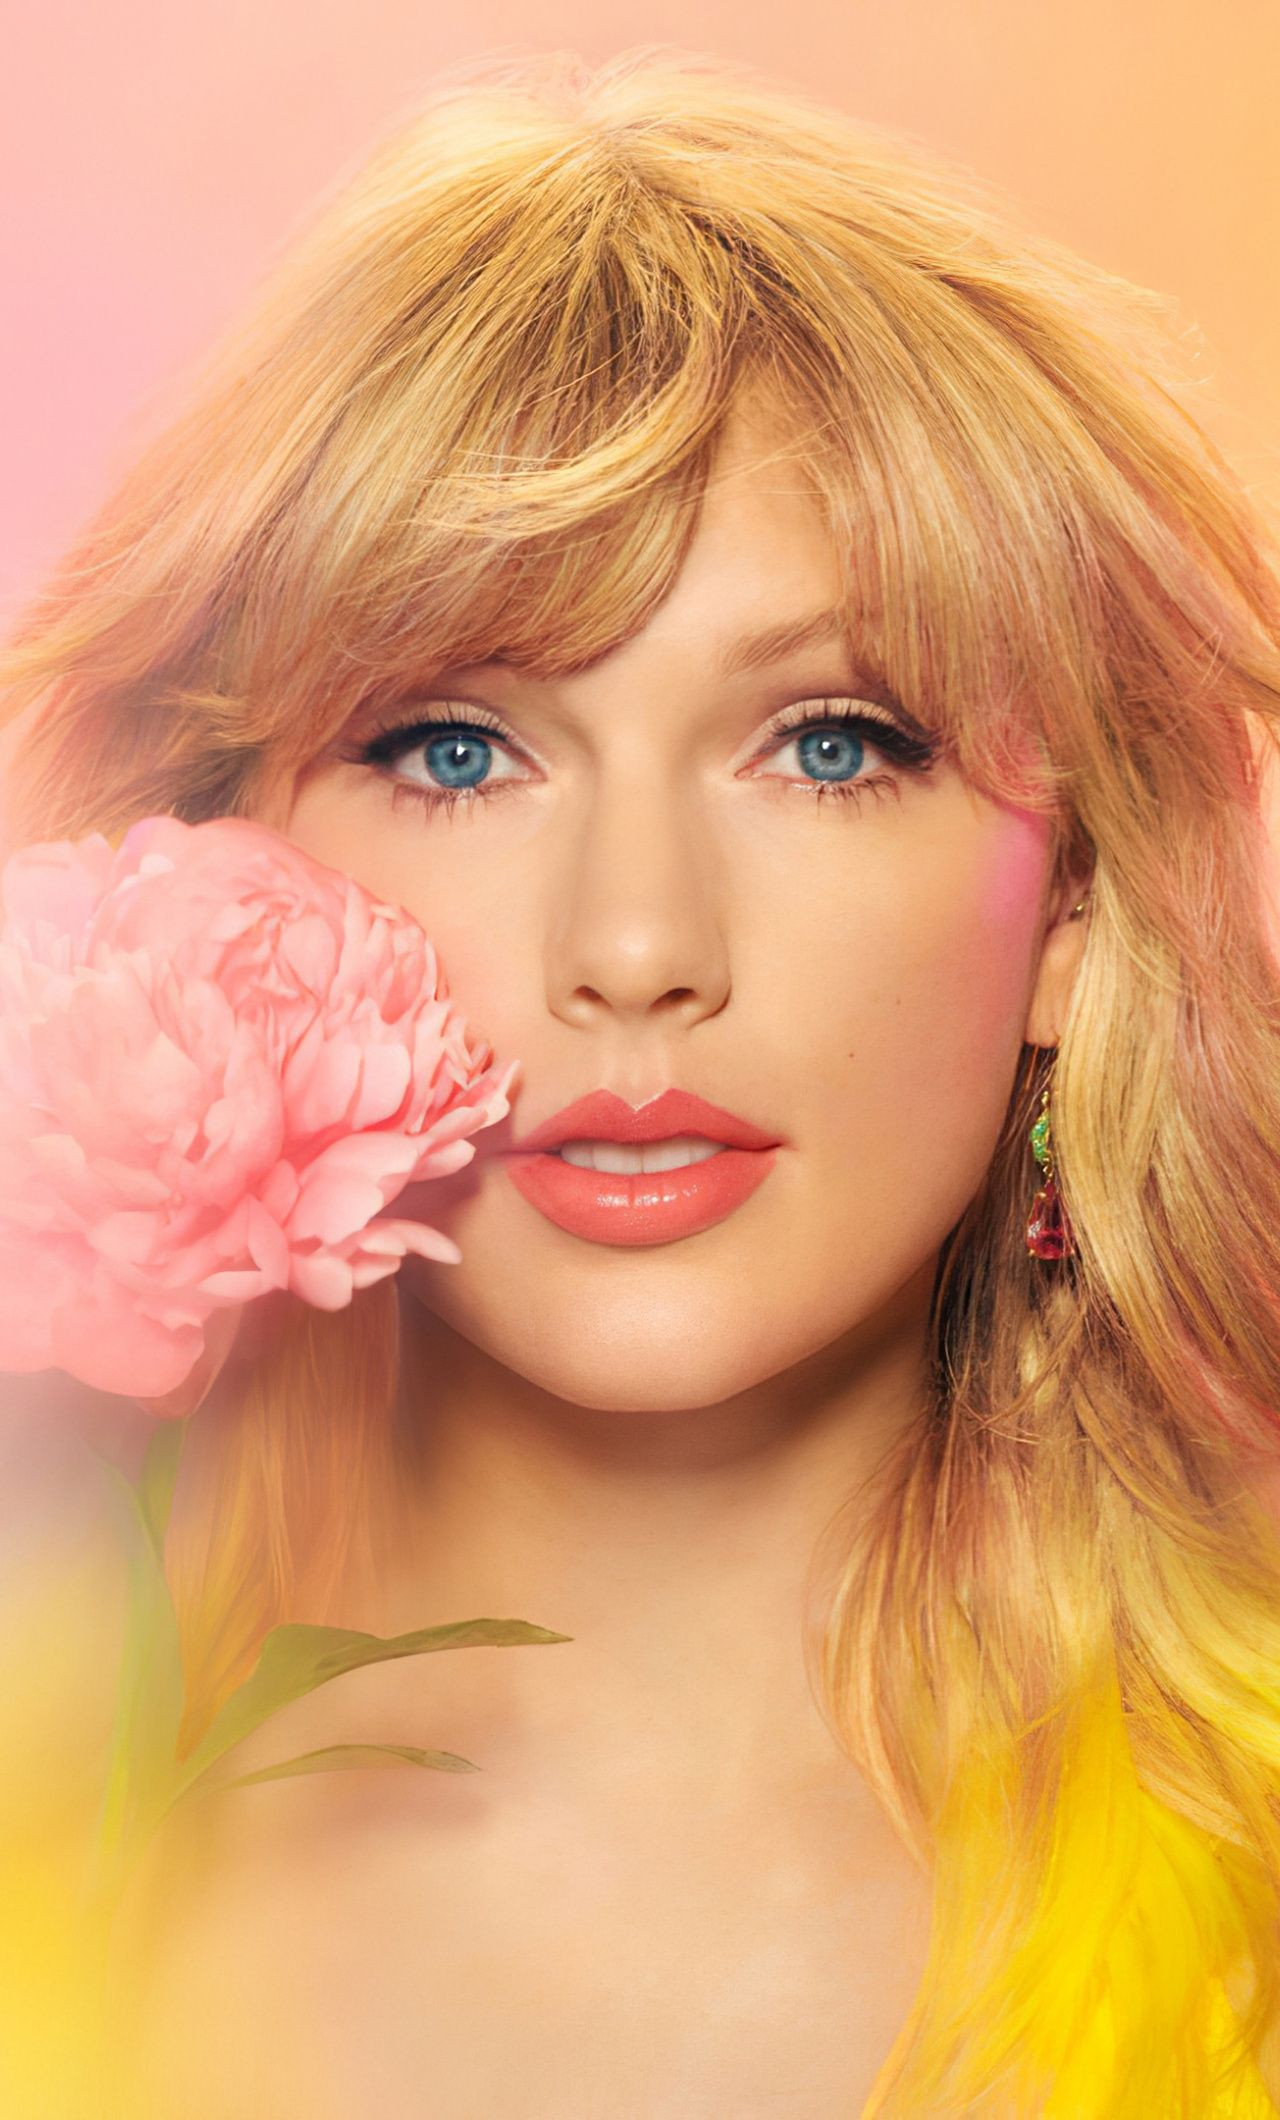 1280x2120 Taylor Swift Beautiful Singer Apple Music 2020 Wallpaper Taylor Swift Wallpaper Taylor Swift Taylor Swift Pictures